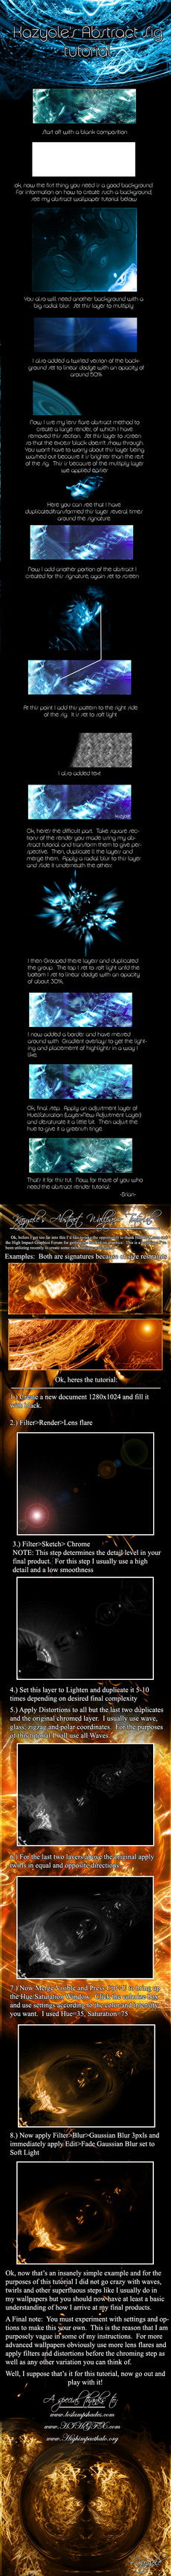 Abstract Signature Tutorial by Kazyole